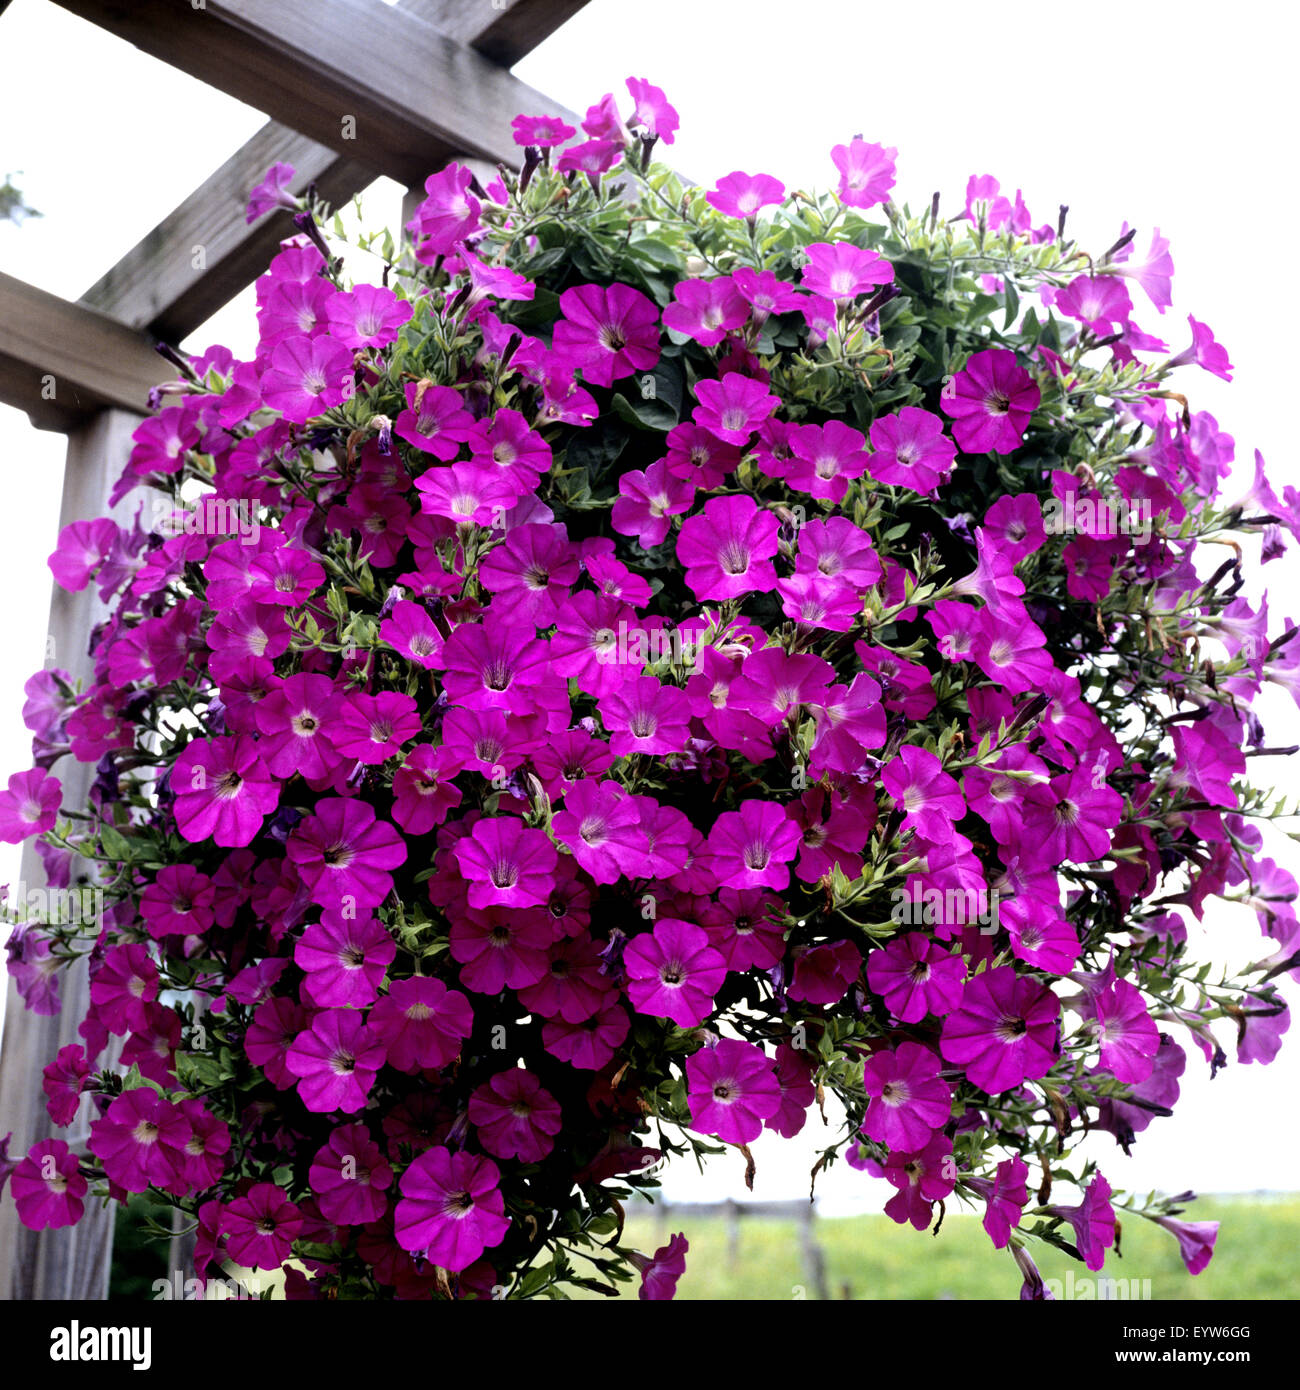 Ampel petunia is one of the popular types of garden flowers 82